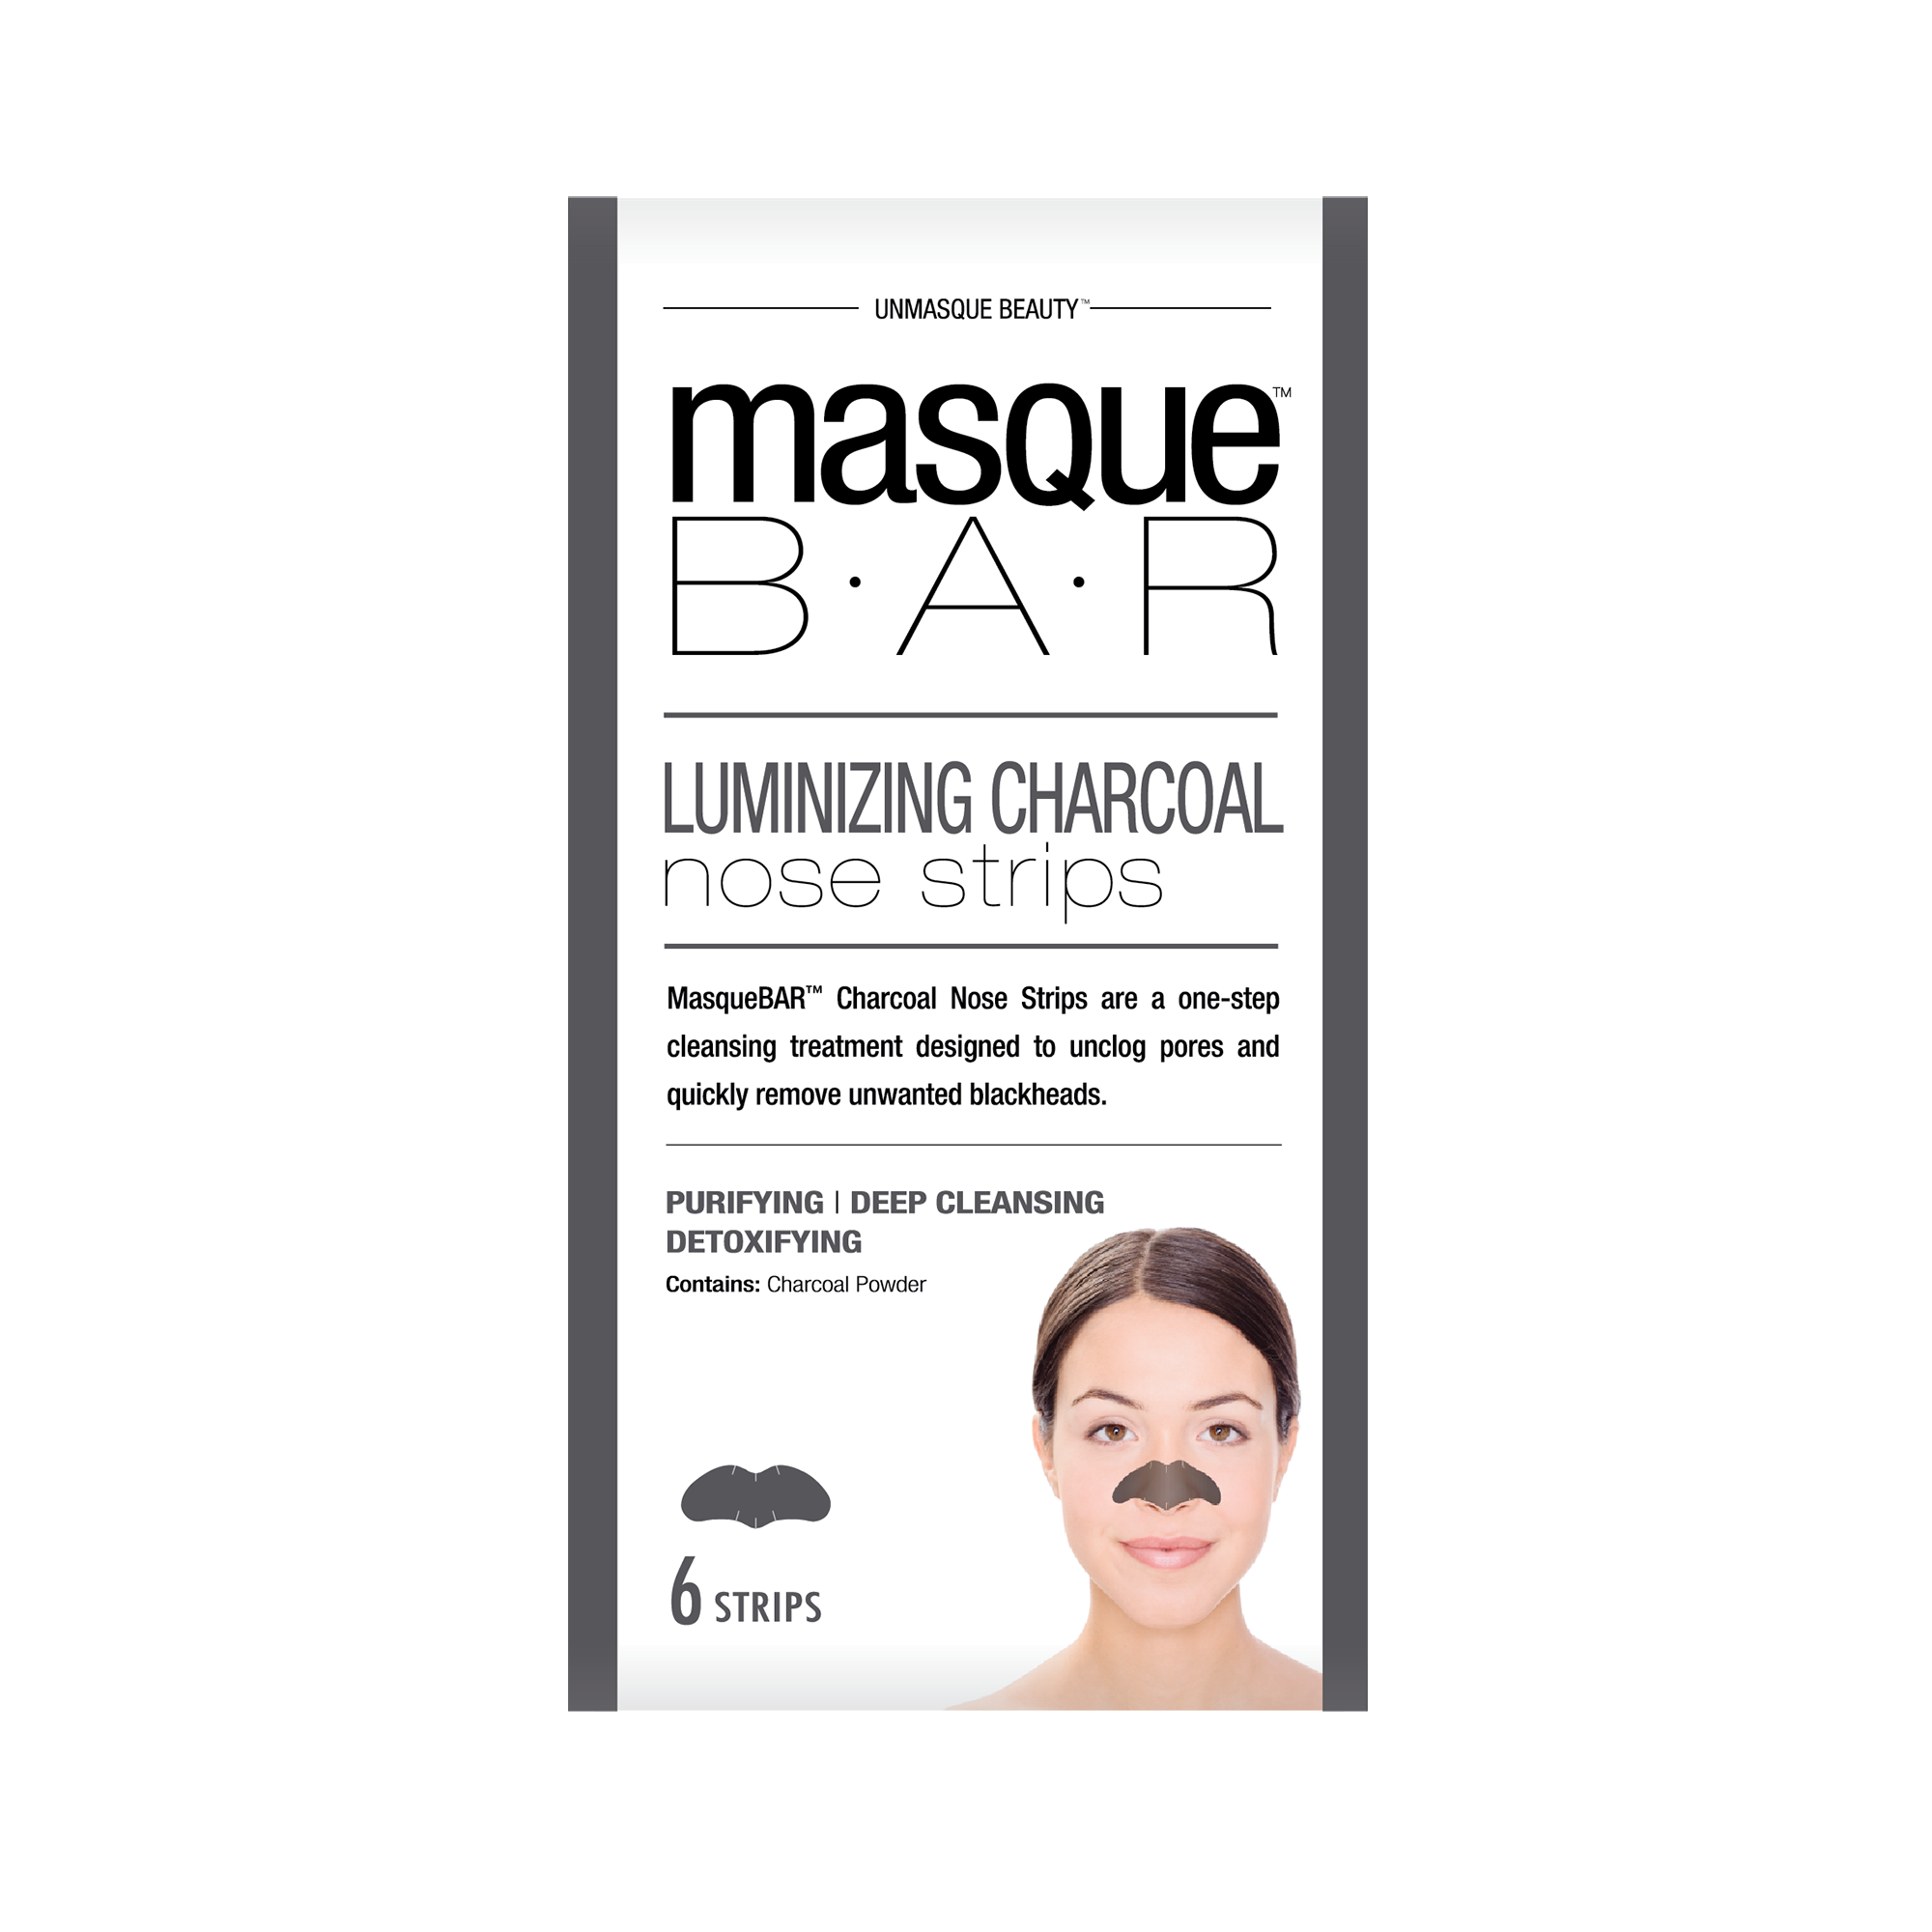 Charcoal Nose Strips masque B.A.R